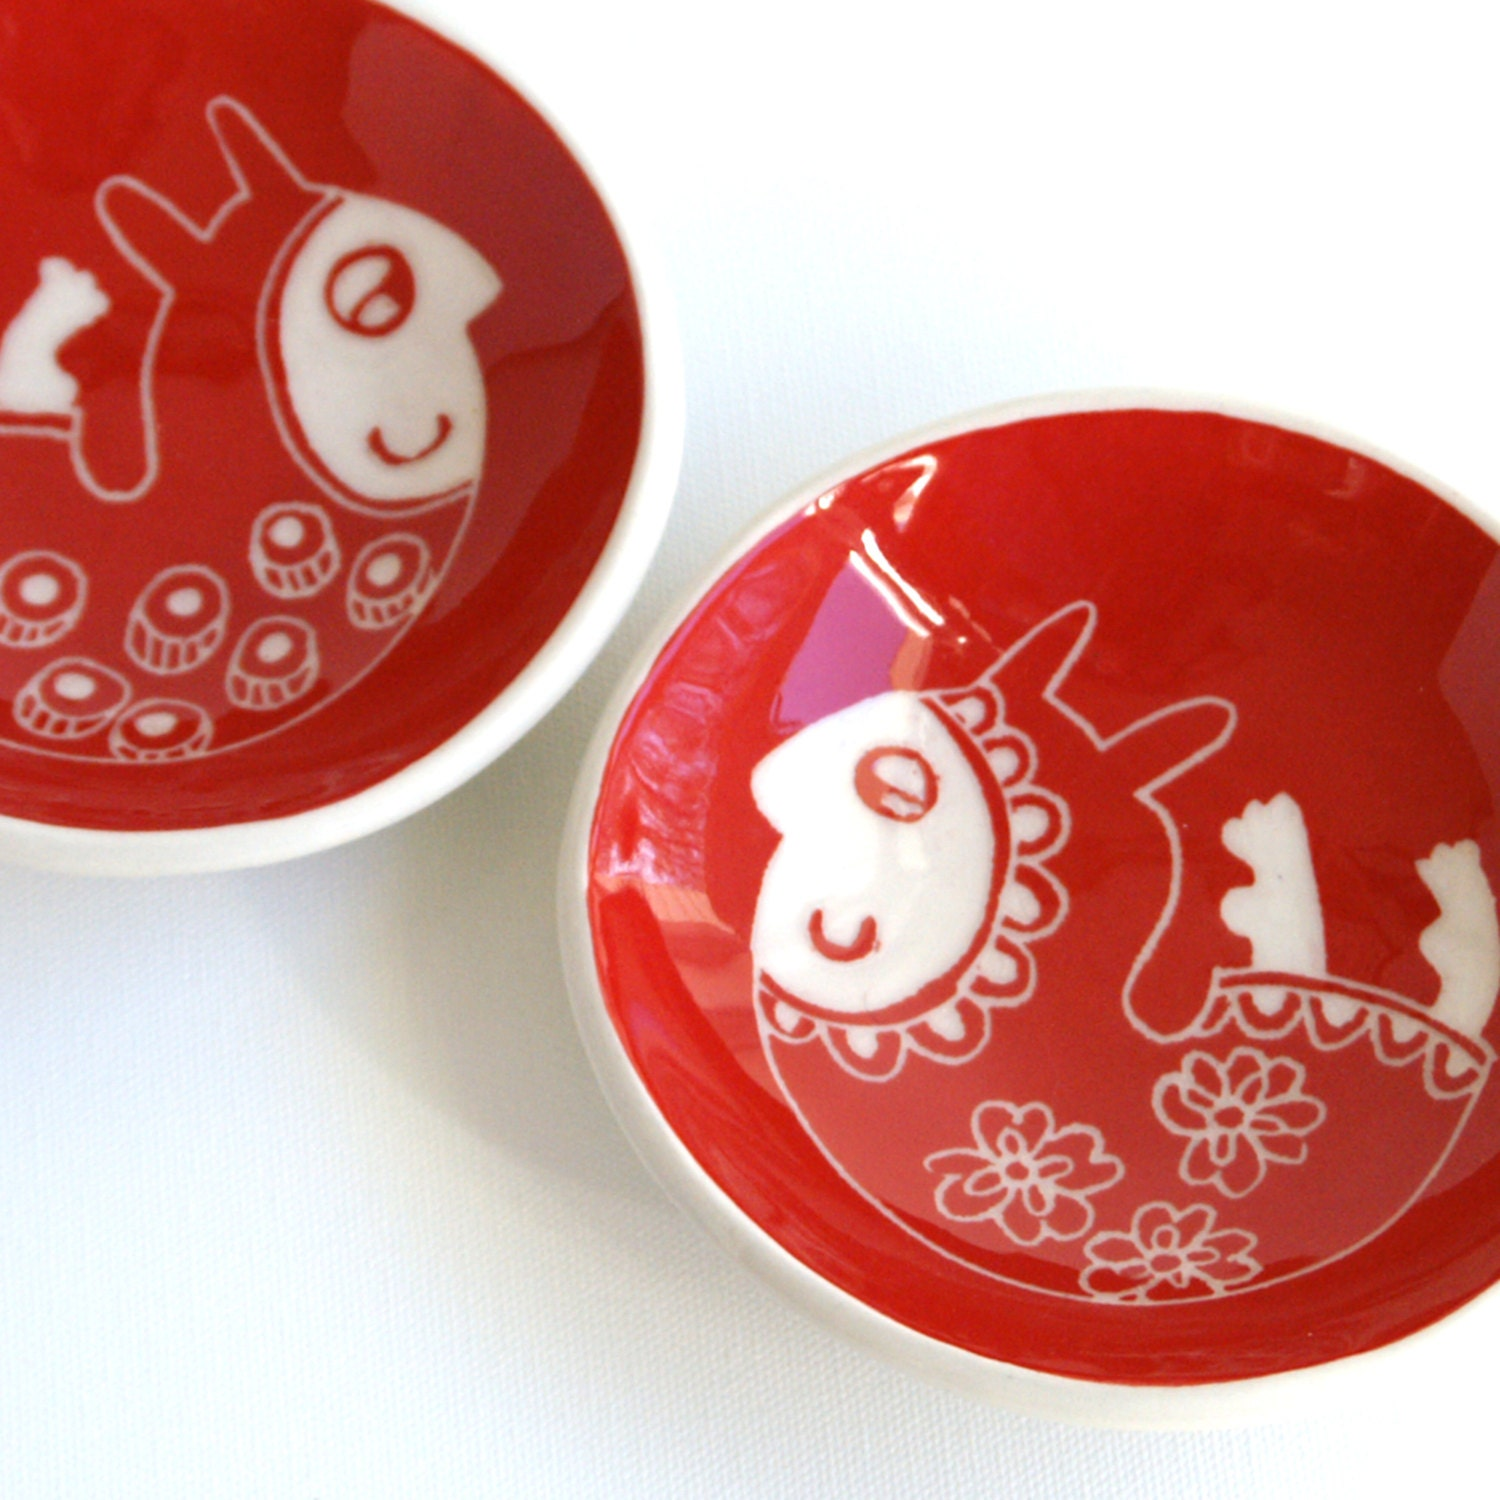 Mr and Mrs red bunny little dish set - Belinism